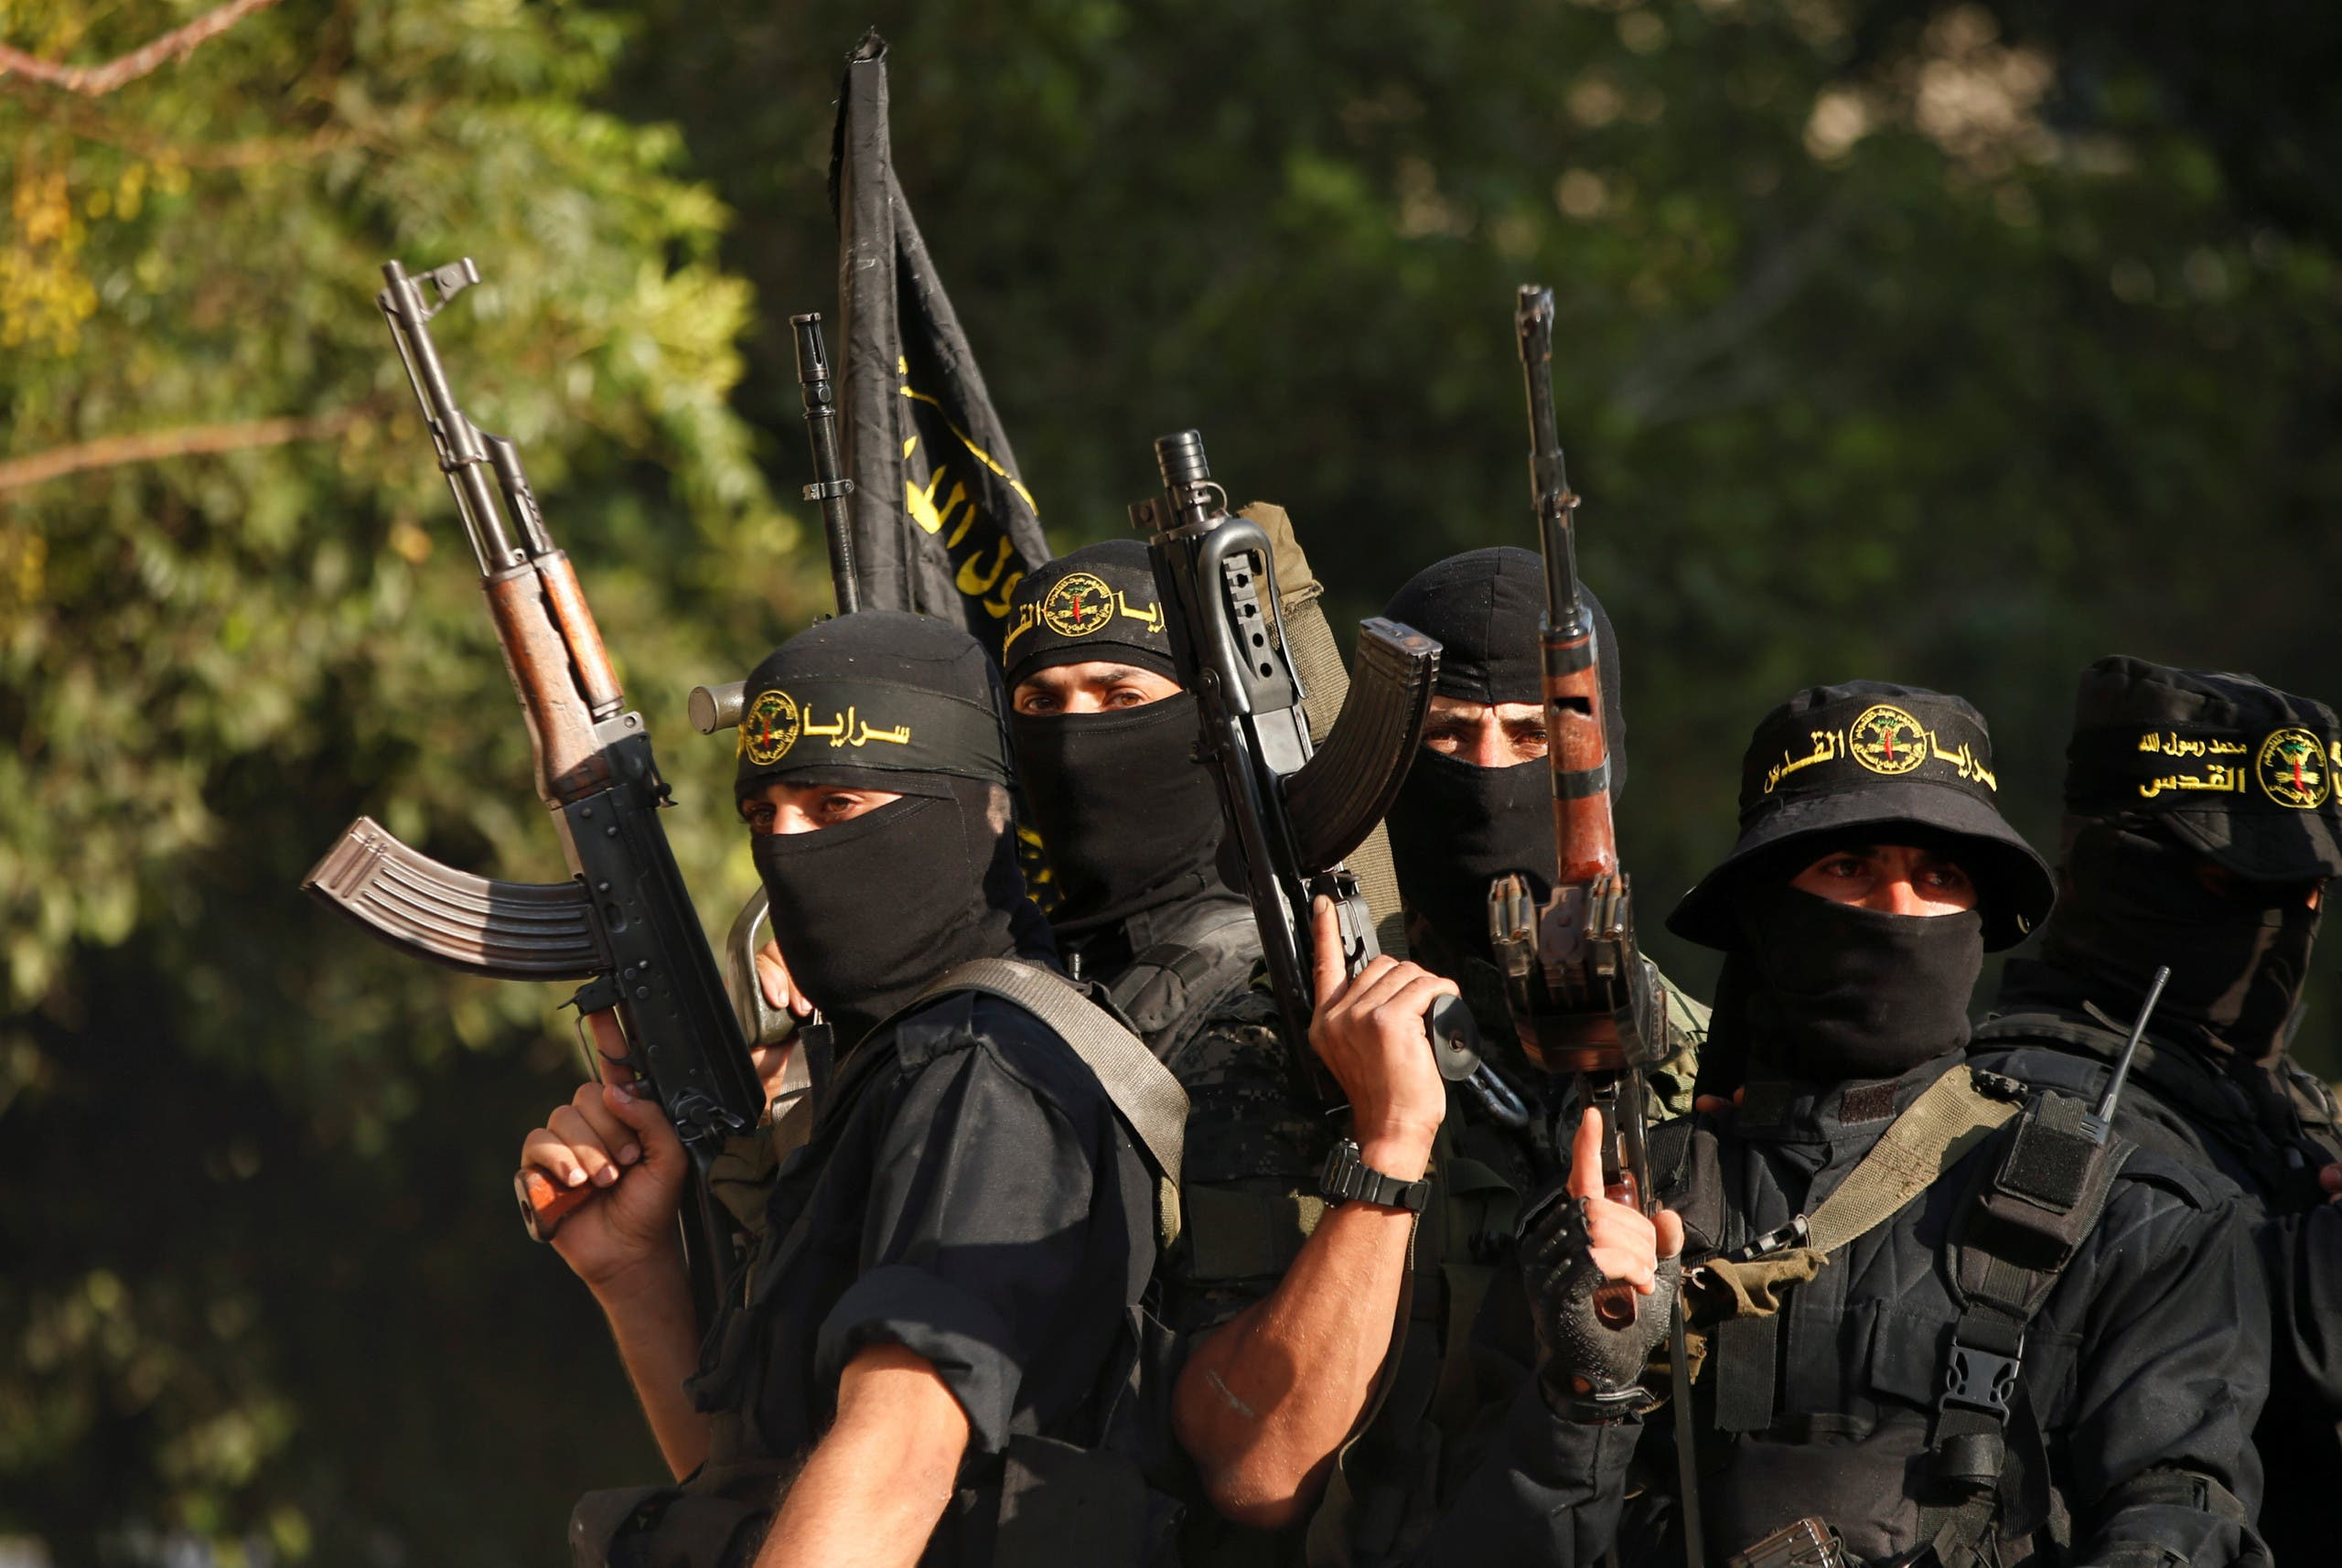 Palestinian Islamic Jihad militants participate in a military show in Gaza City October 4, 2018. (Reuters)